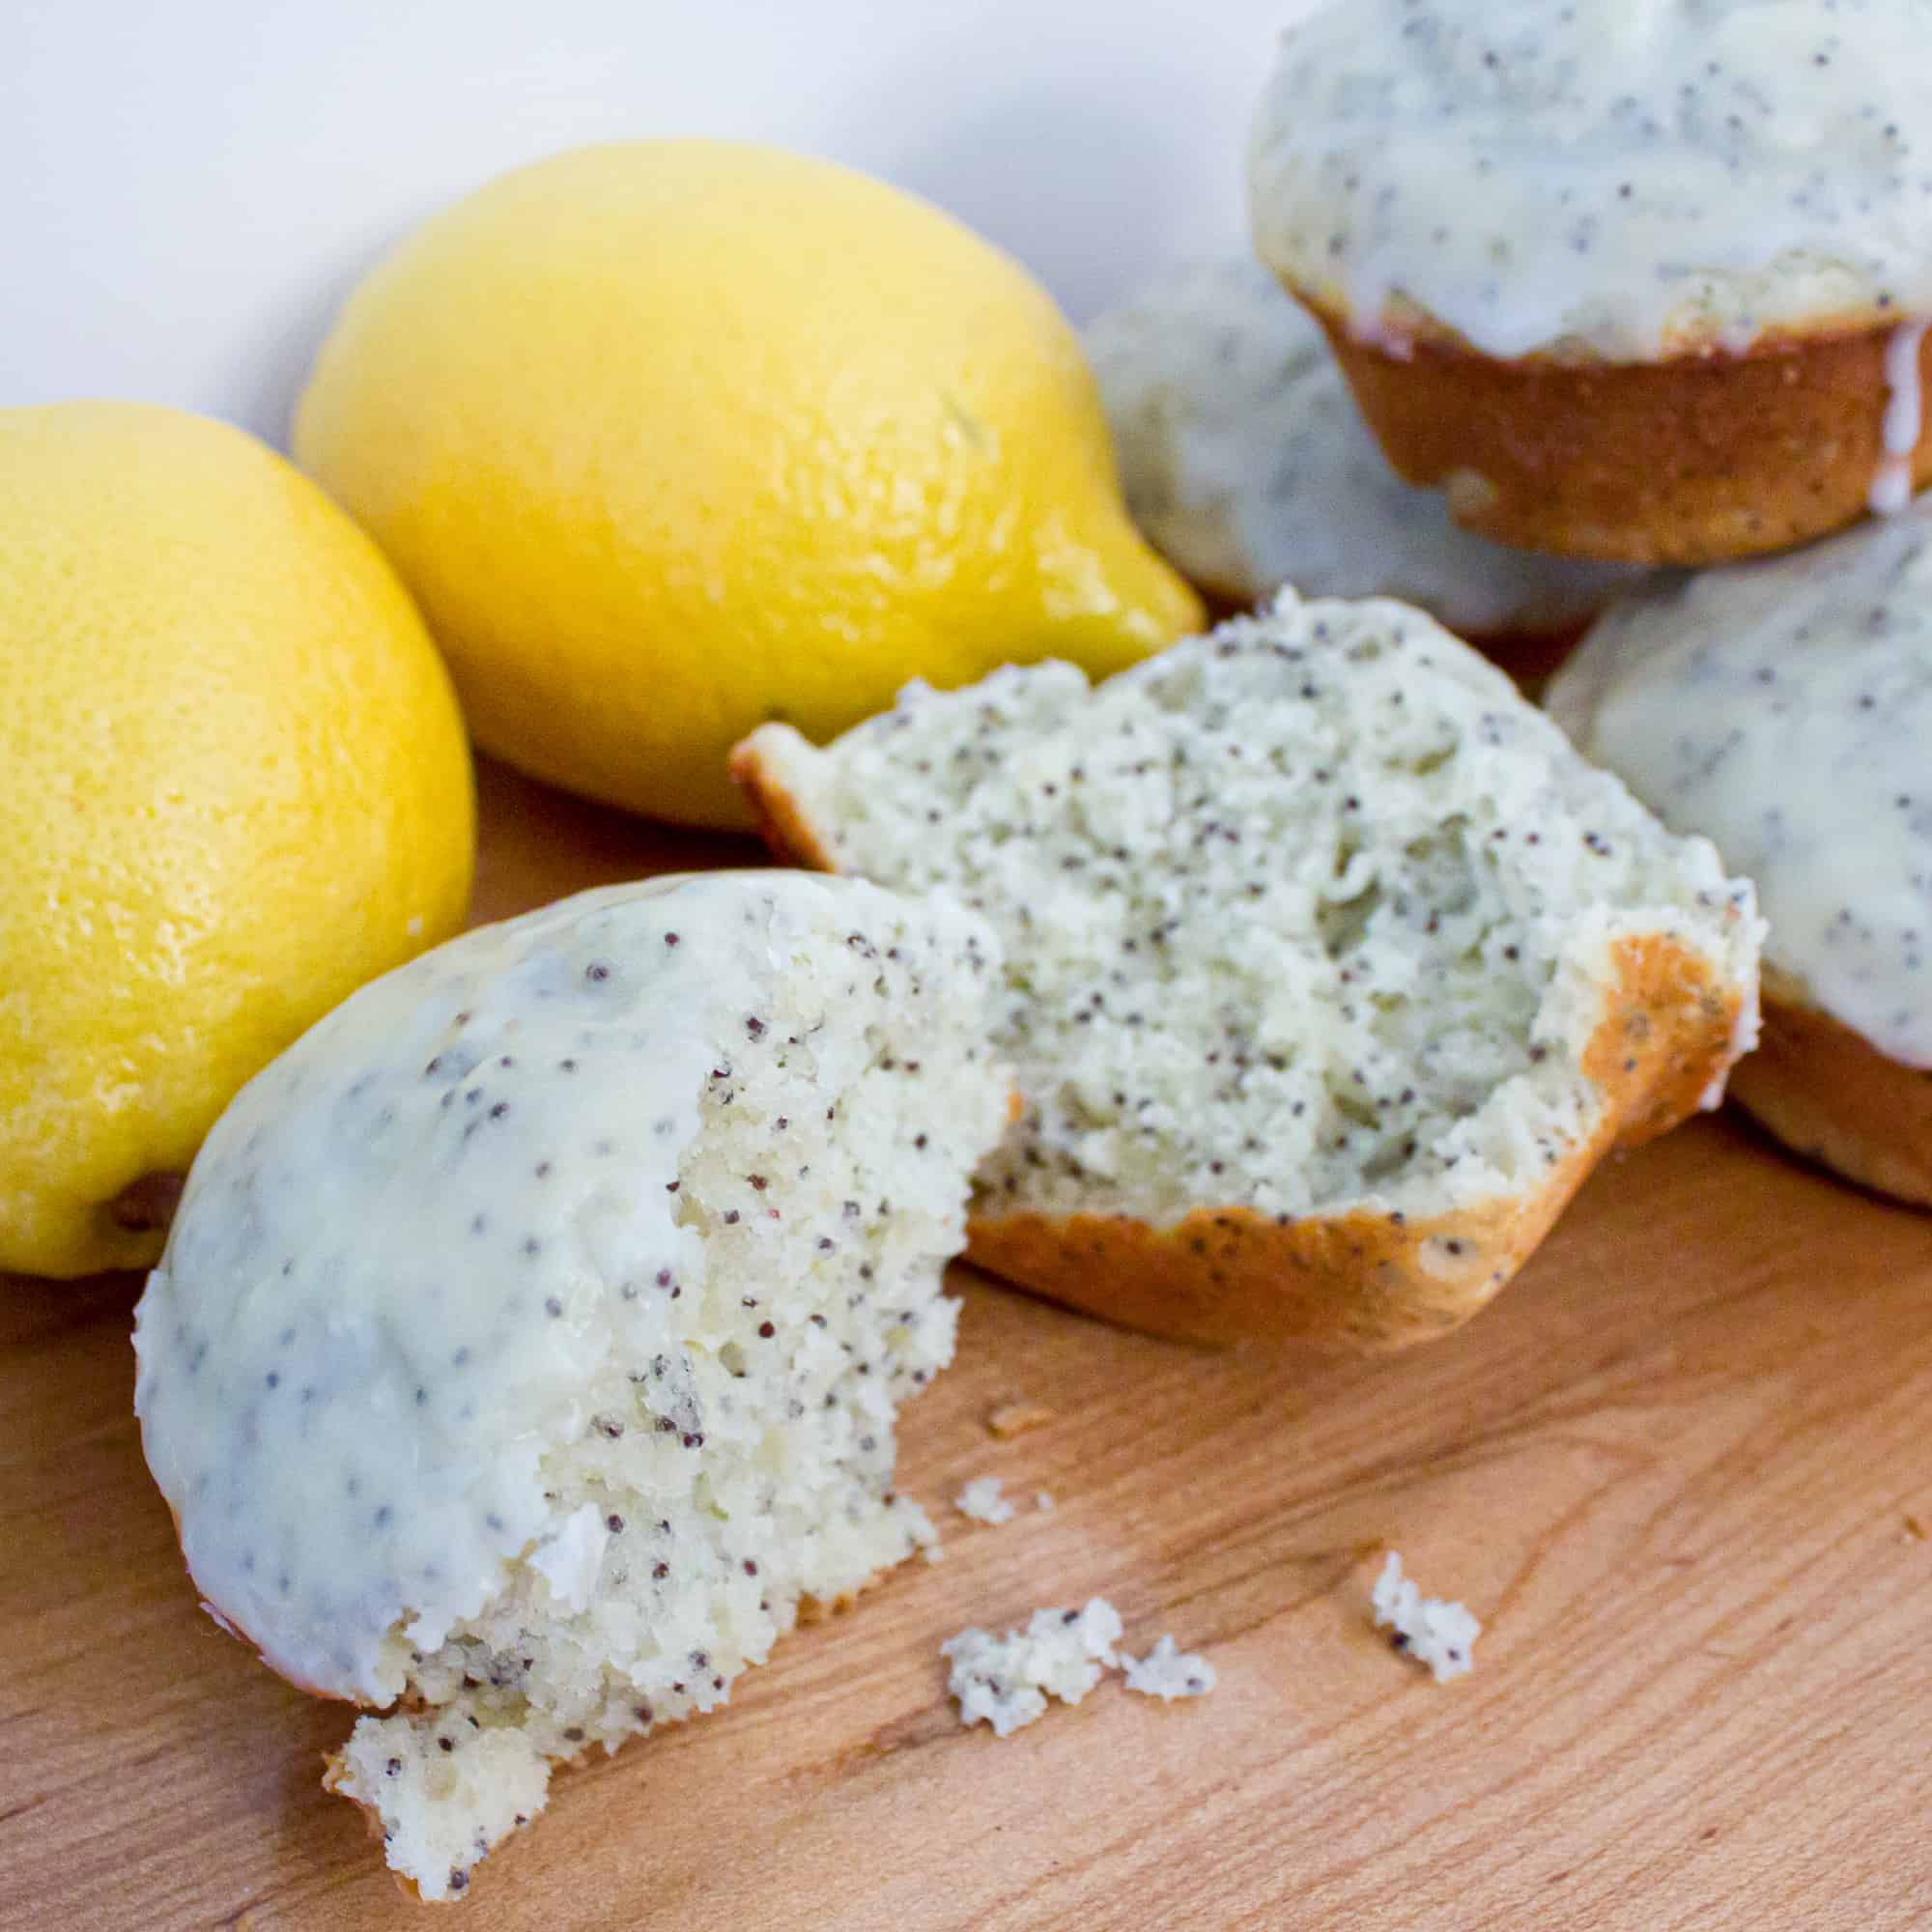 An easy to make muffin recipe that is moist and full of lemon flavour. Very similar and copycat to the Starbucks lemon poppy seed loaf.